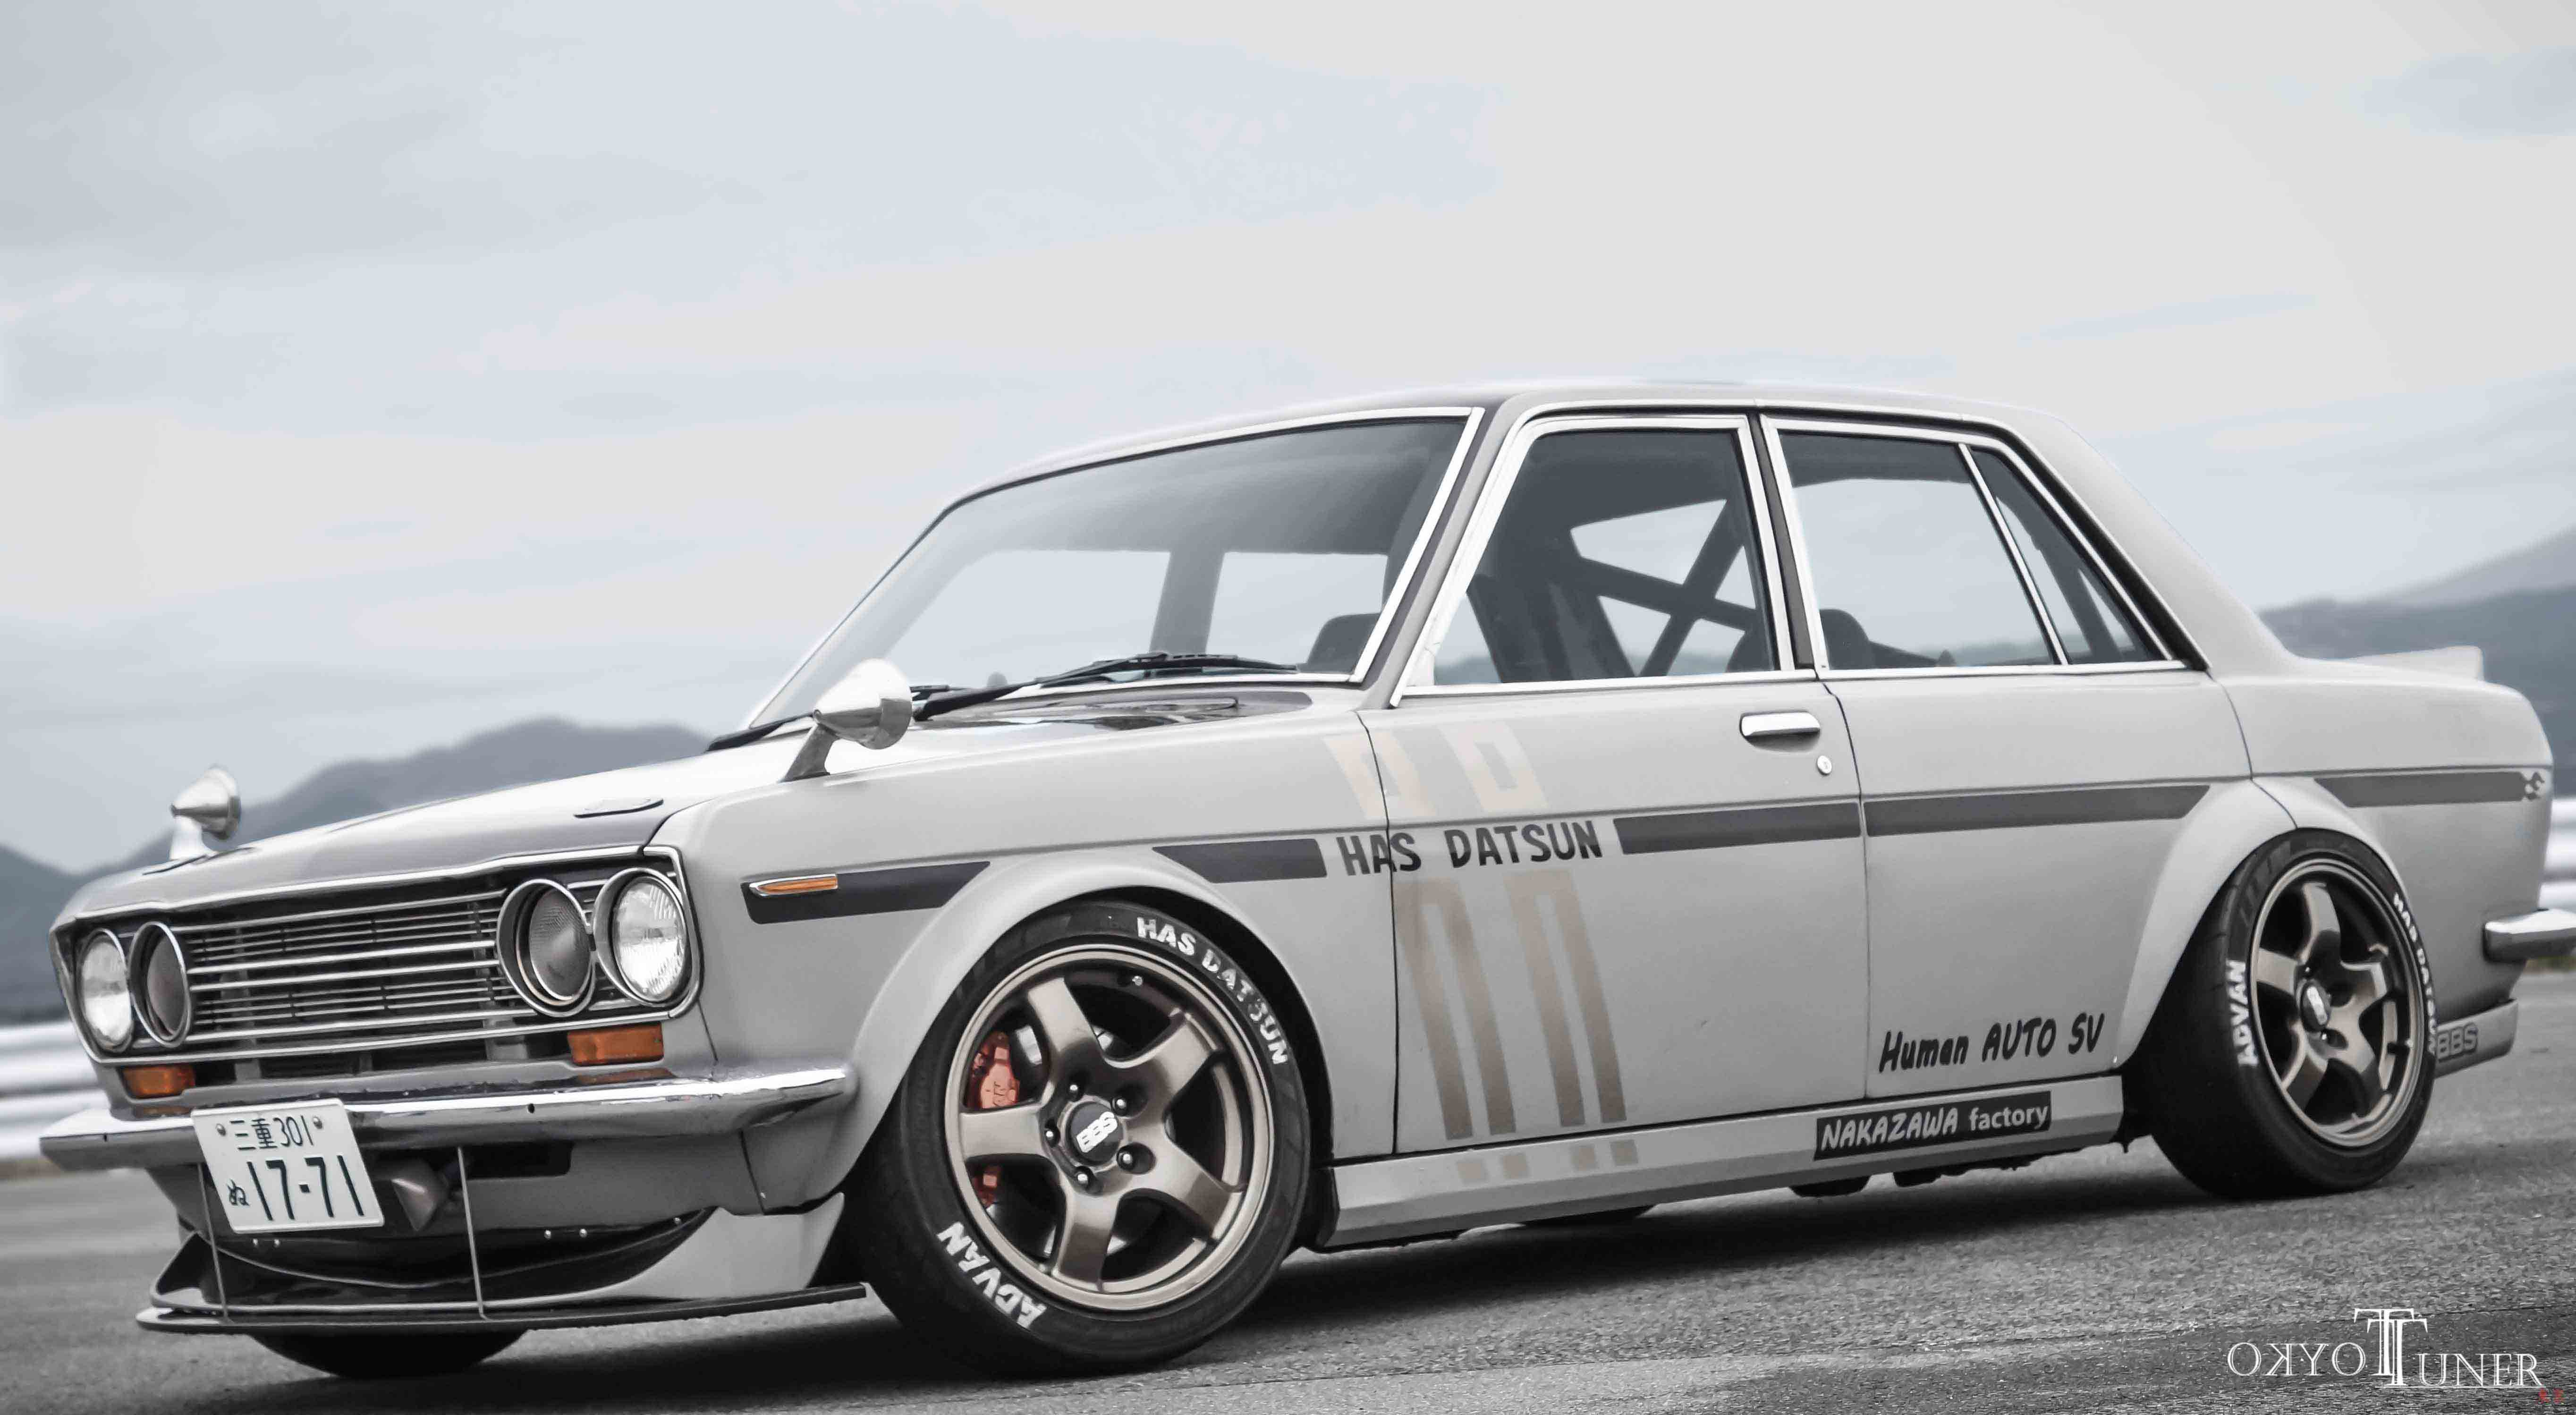 Who else would race this awesome Datsun 510?